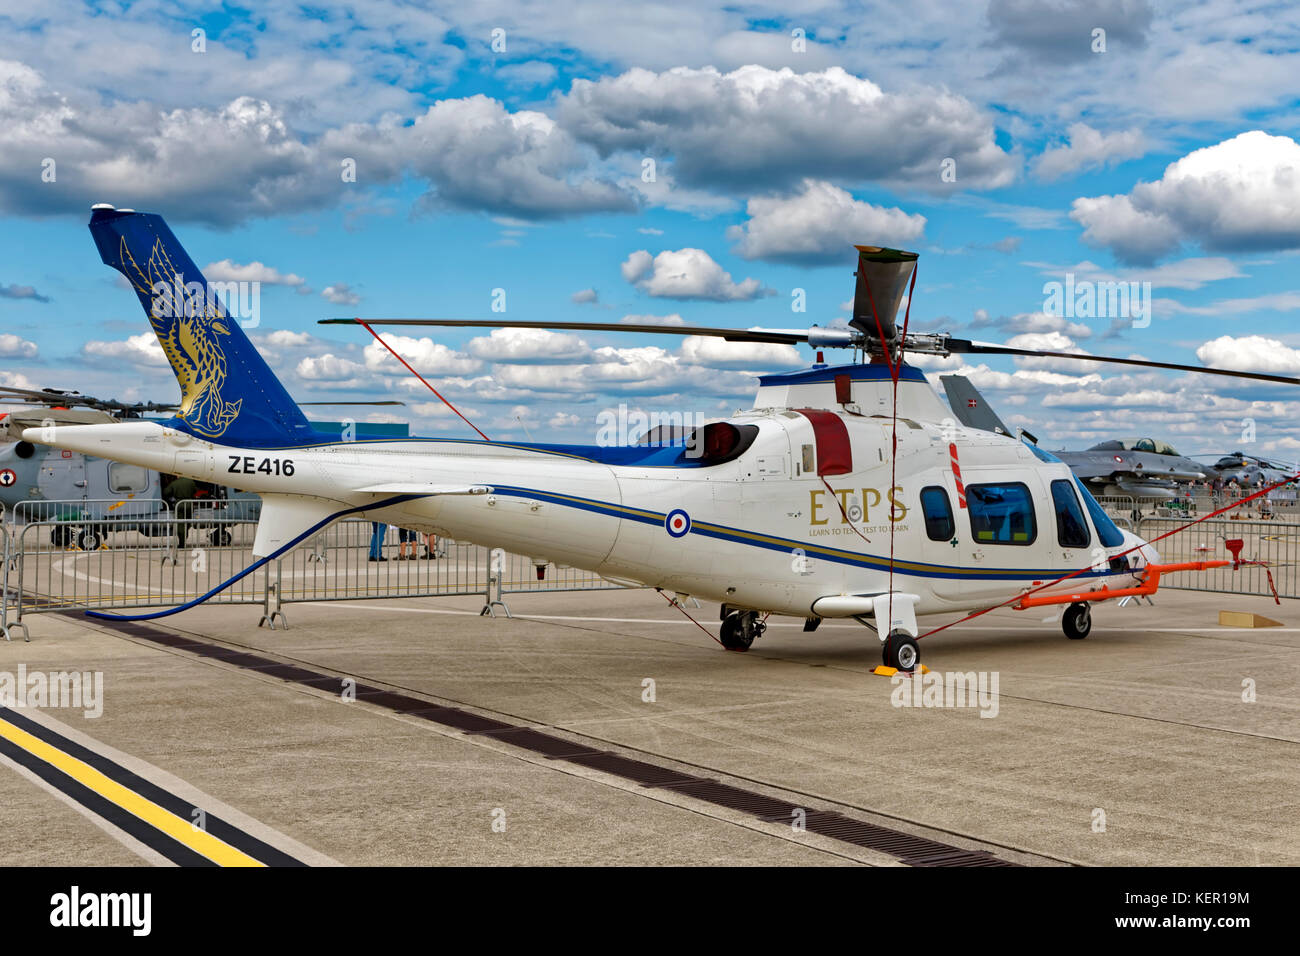 Agusta A109E Power Helicopter - Stock Image